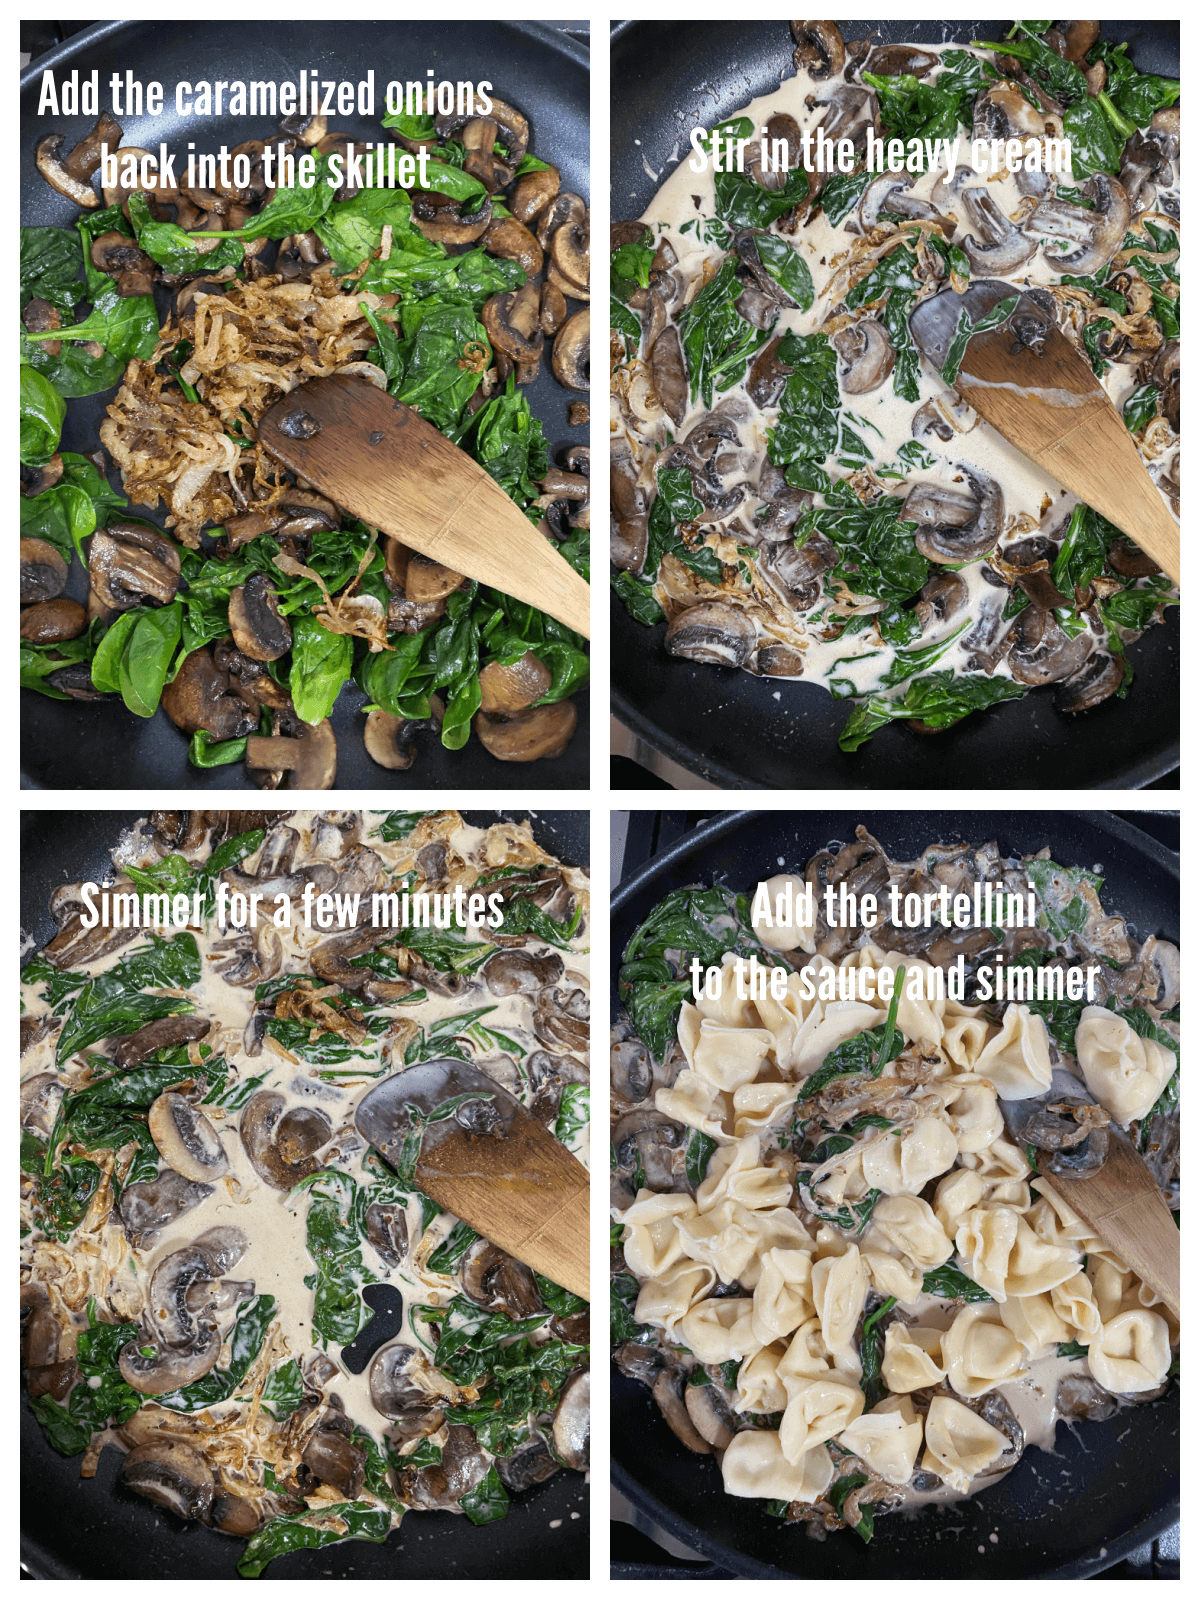 A collage with the final steps to preparing the Cheese tortellini with mushrooms and spinach in a rich creamy caramelized onion sauce.